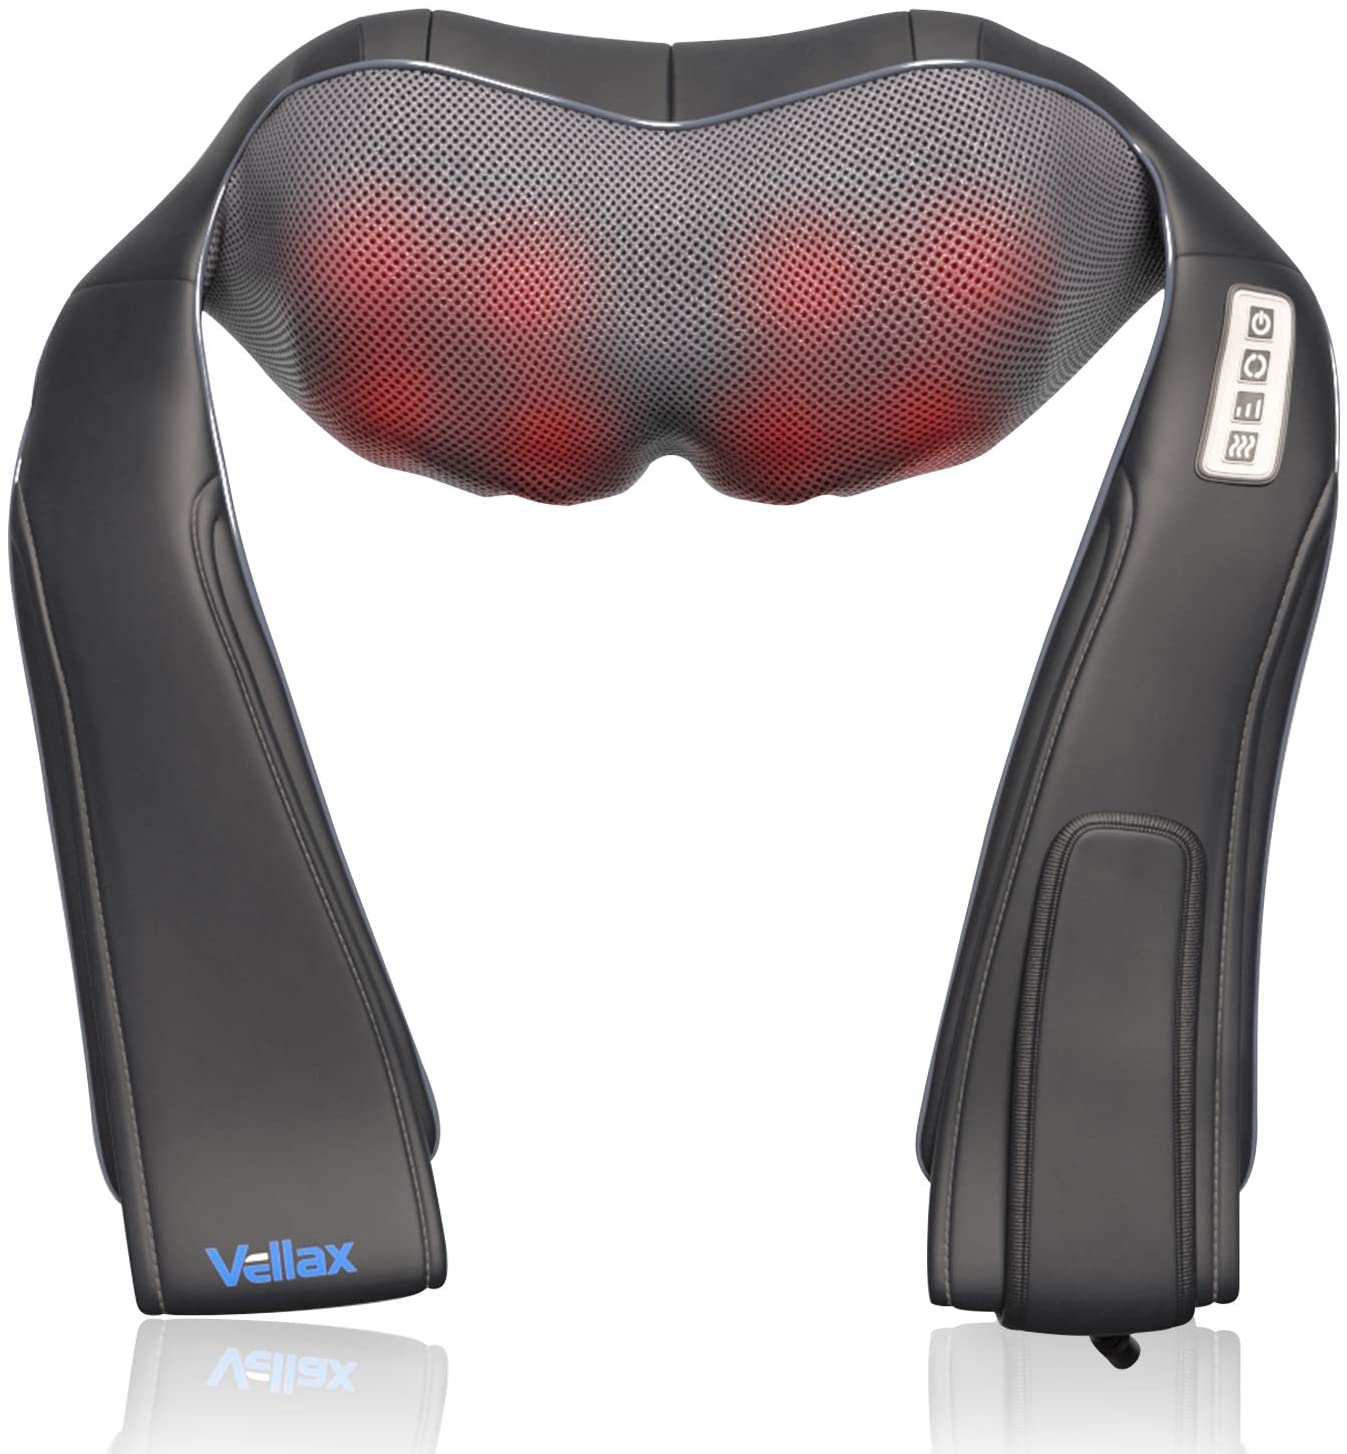 Shiatsu Neck and Back Electric Massager 3 - Heat 8 Speeds Fashionable with Max 71% OFF